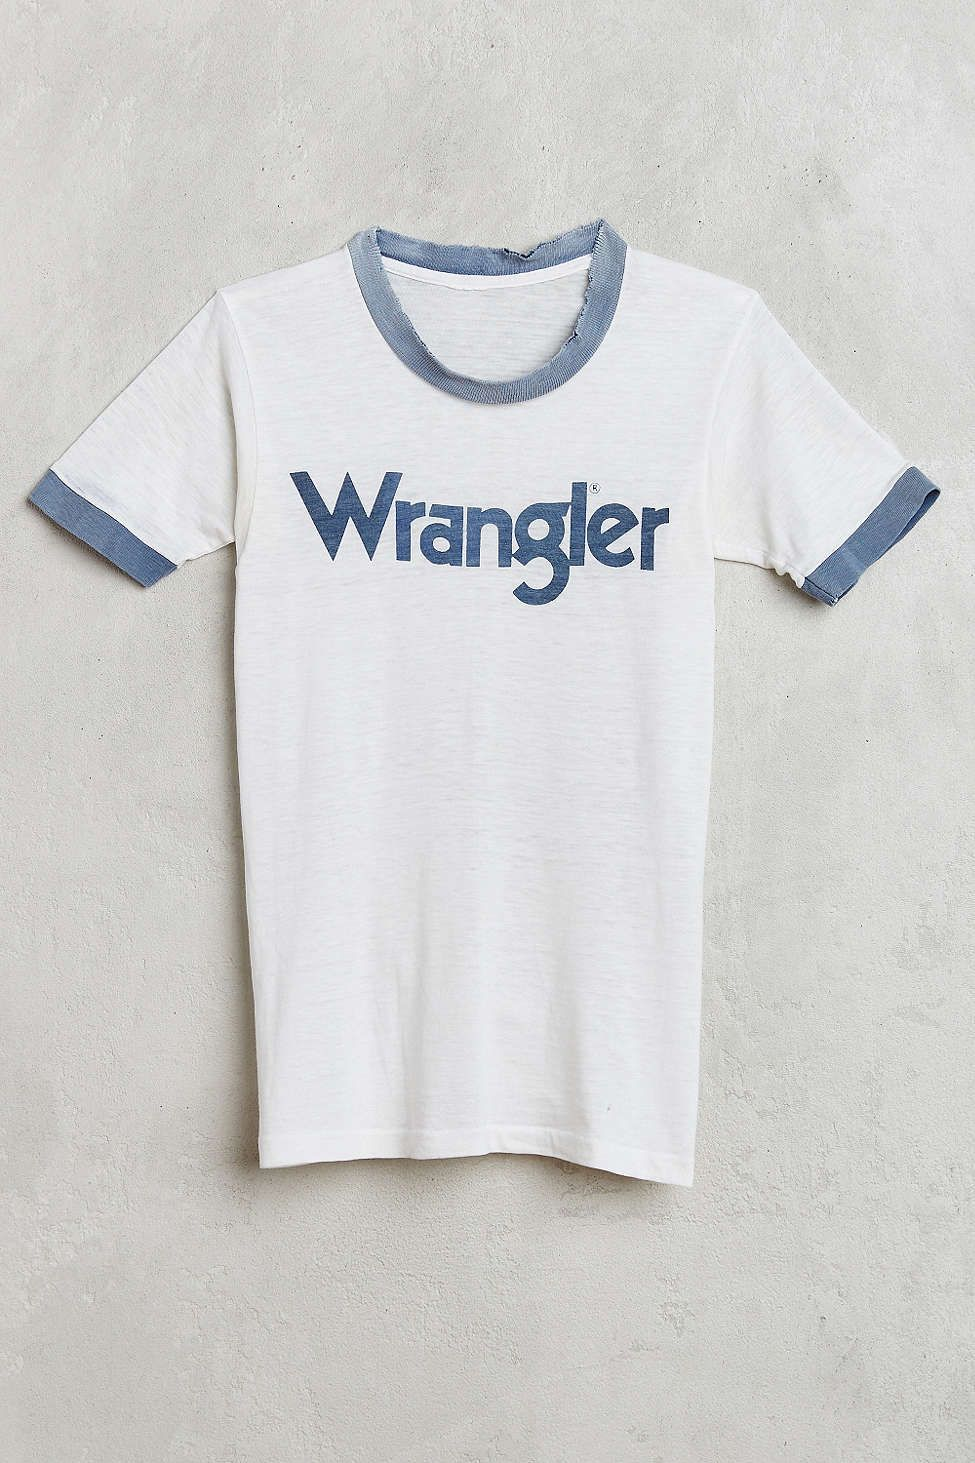 Vintage Wrangler Ringer Tee - Urban Outfitters f4fa7f663